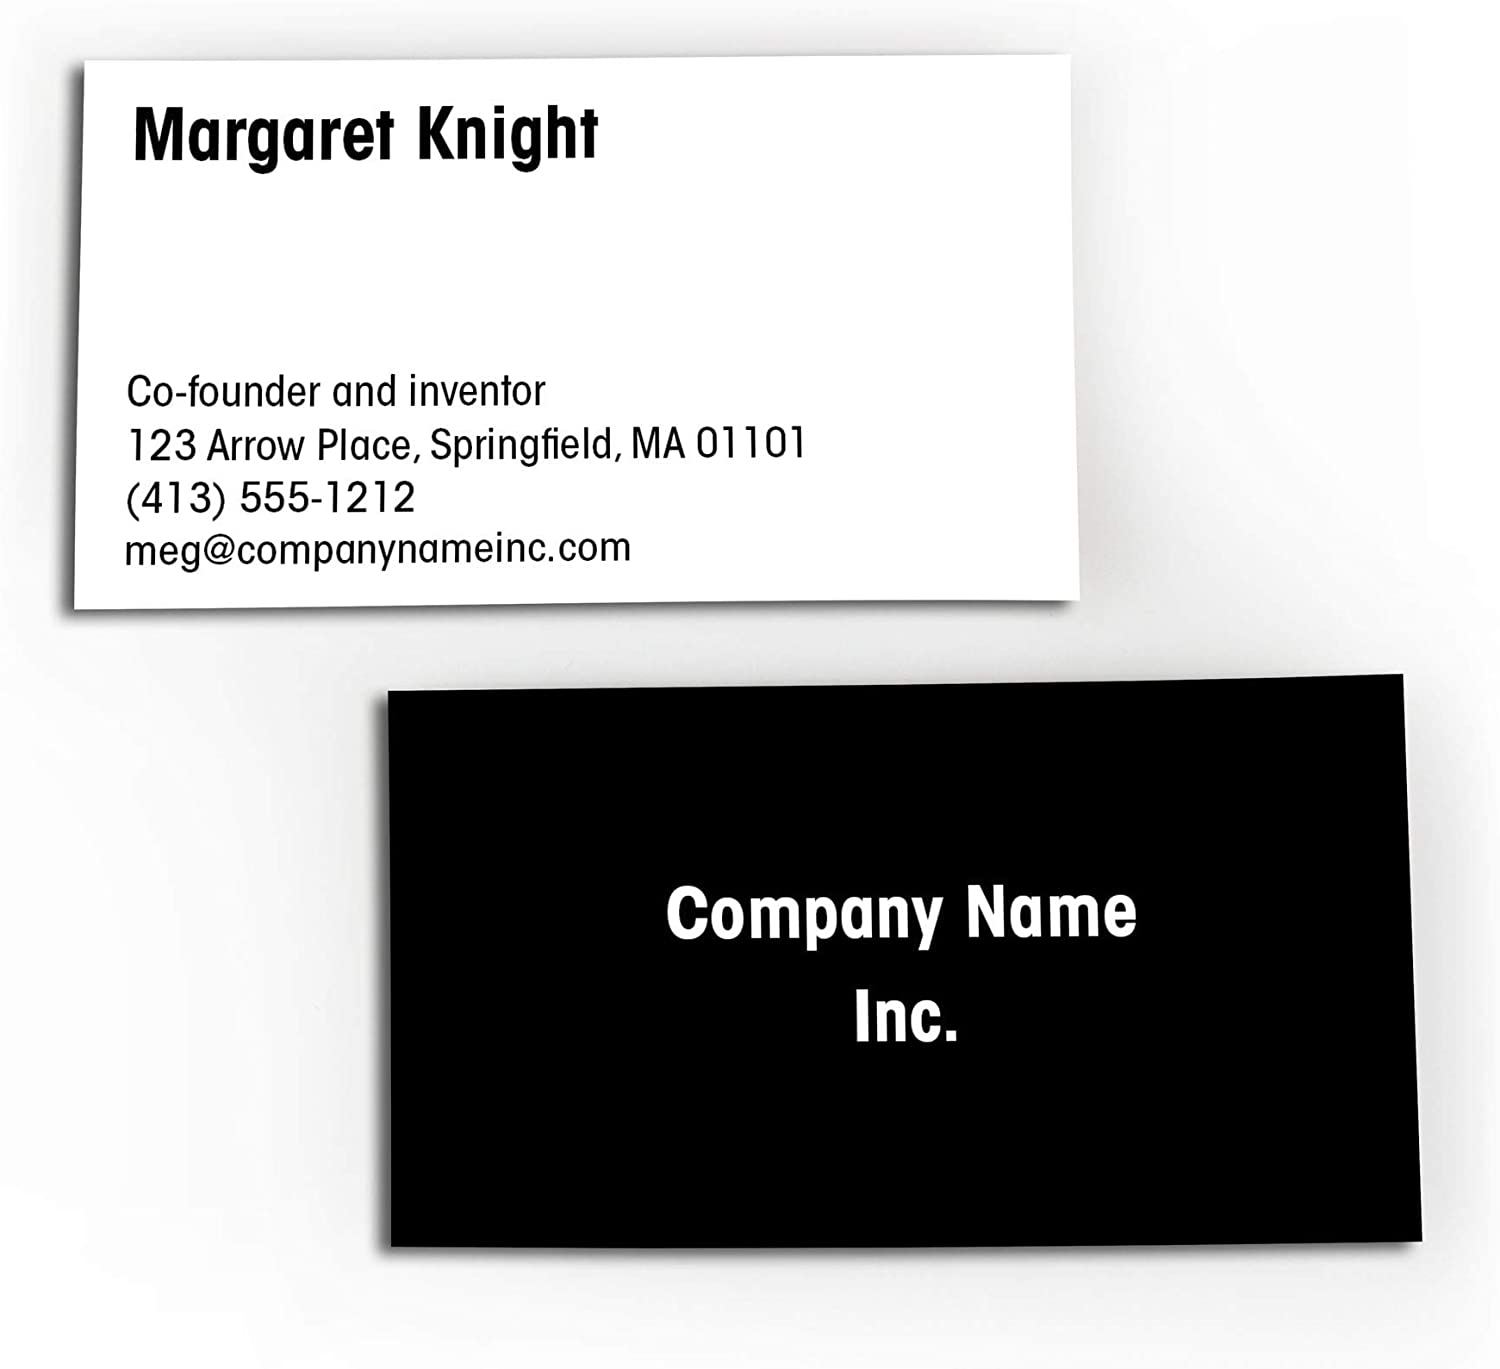 3.5x2 Made in The USA 16 pt Thick Cards Basic Black Quantity 250 Buttonsmith Custom Basic Black Premium Printed Business Cards Double-Sided